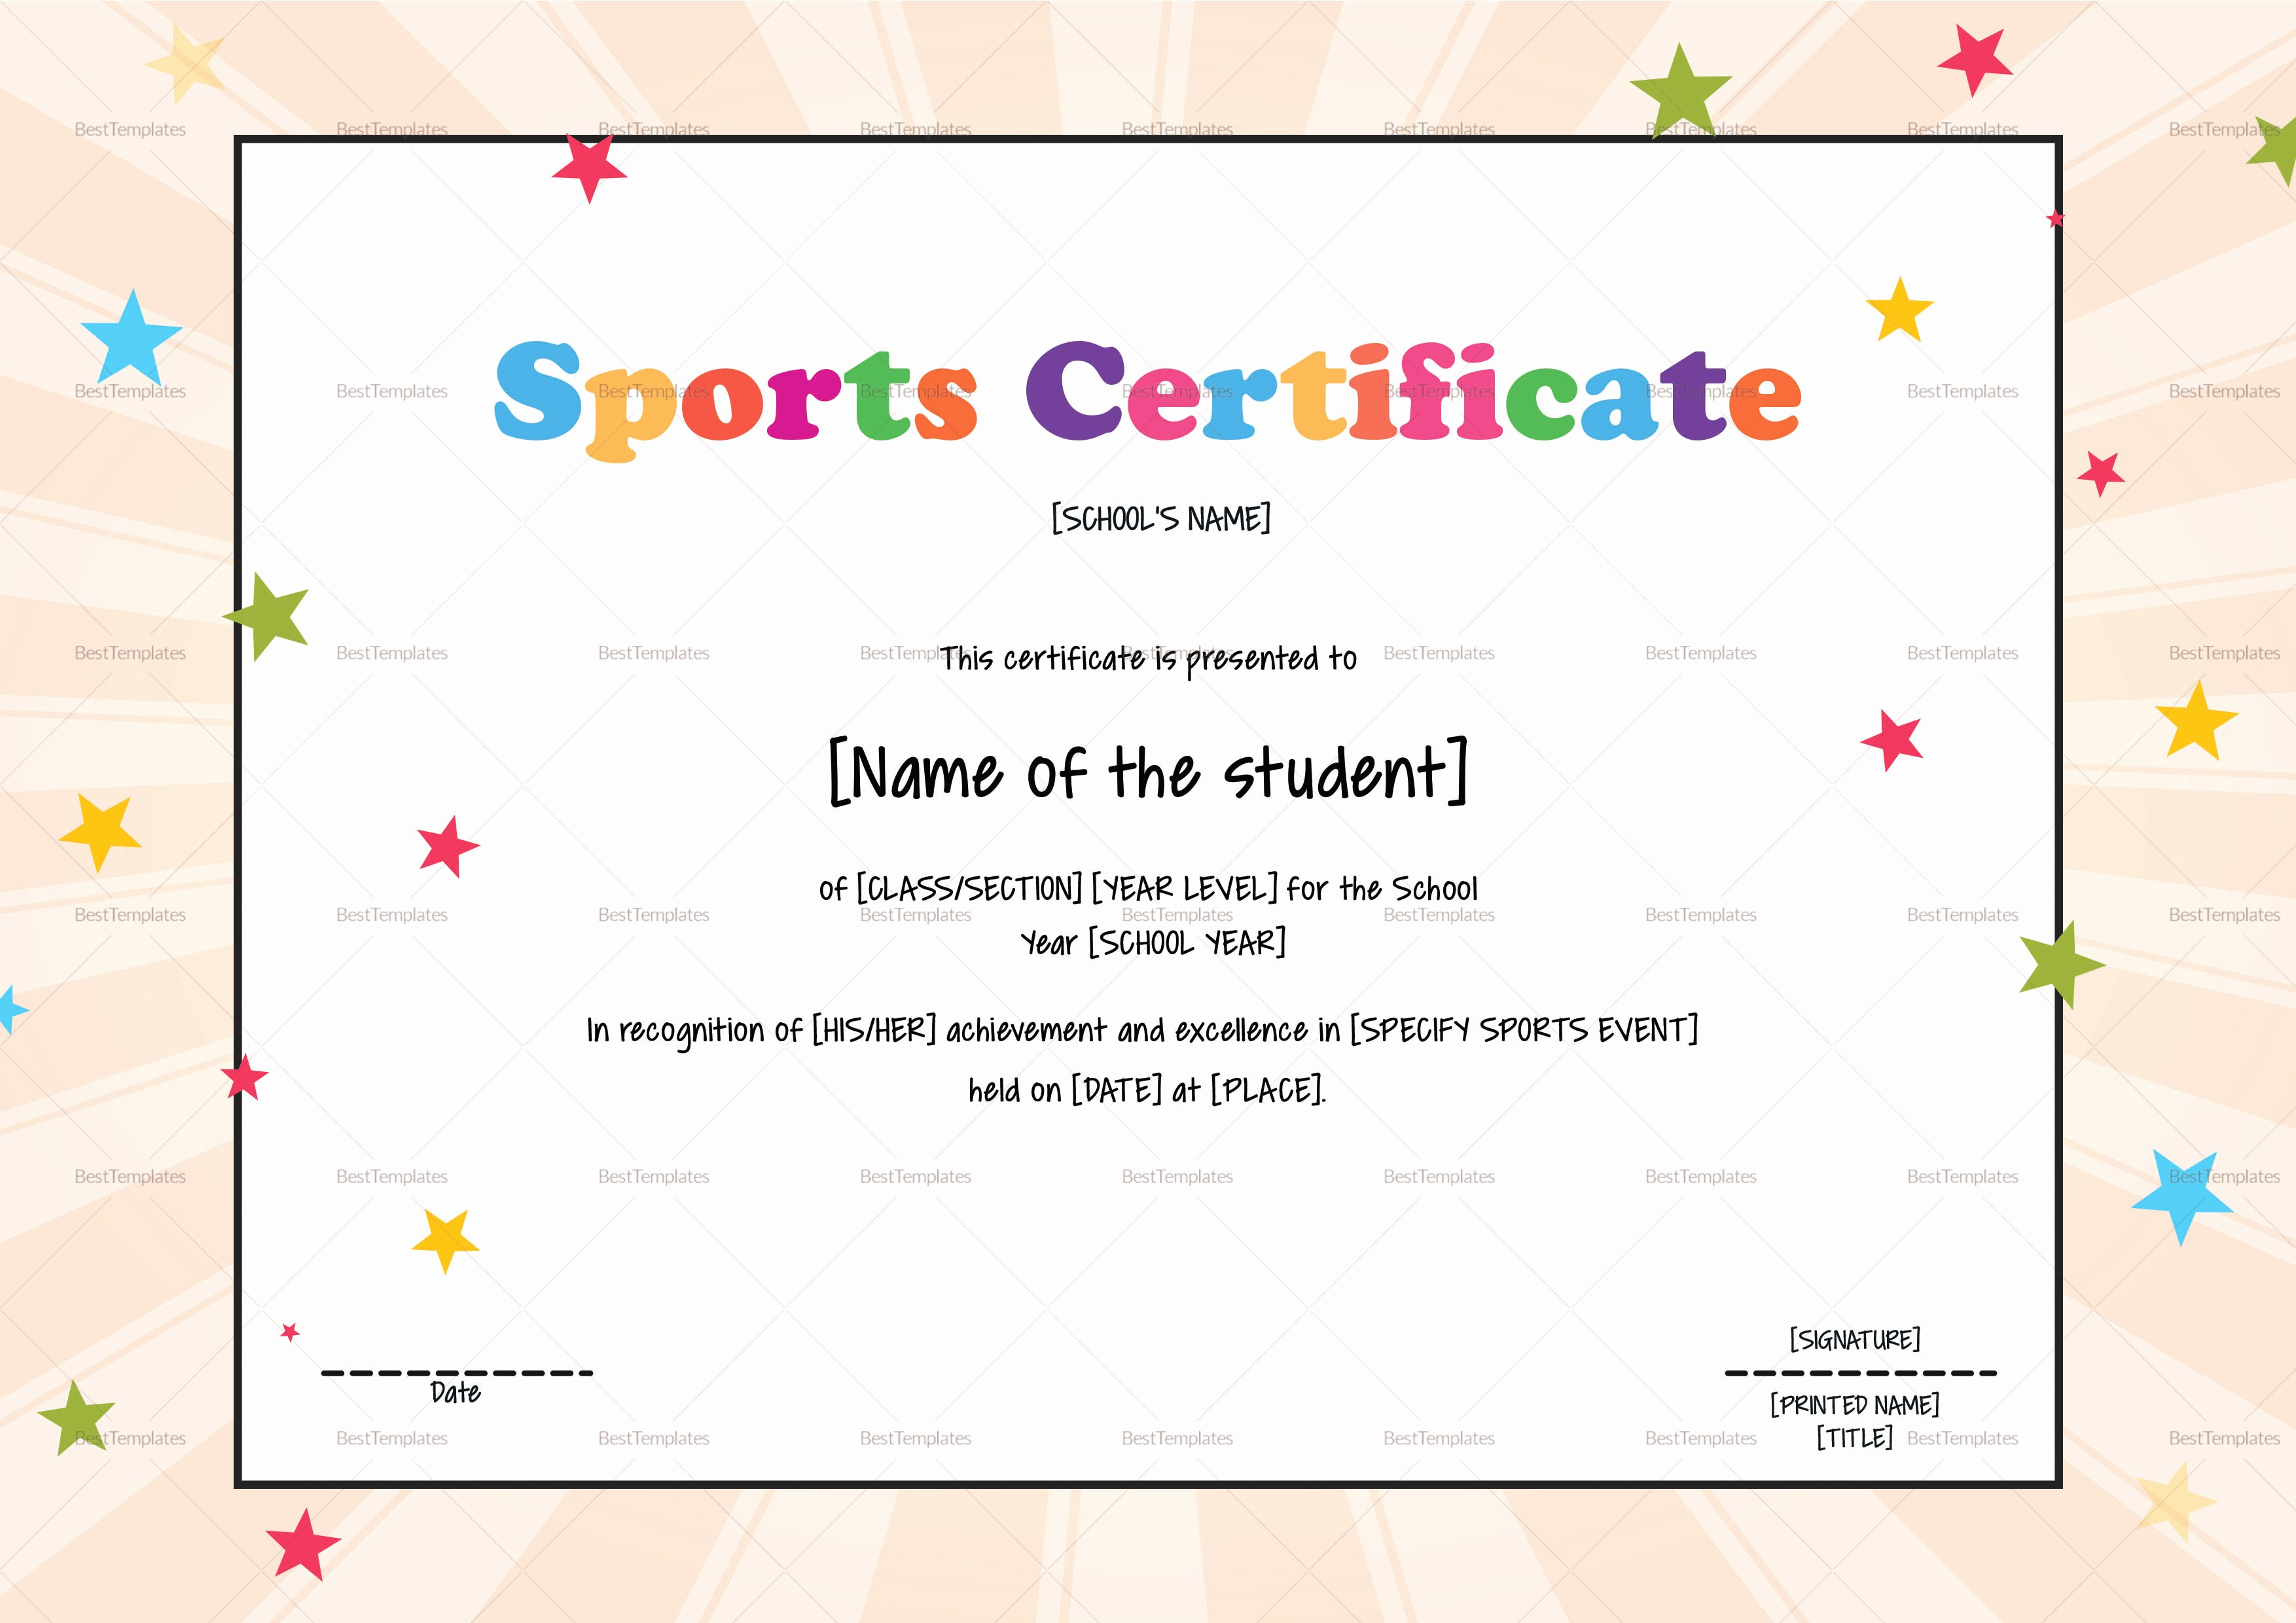 Sports Certificate Templates for Word New Kids Sports Certificate Design Template In Psd Word